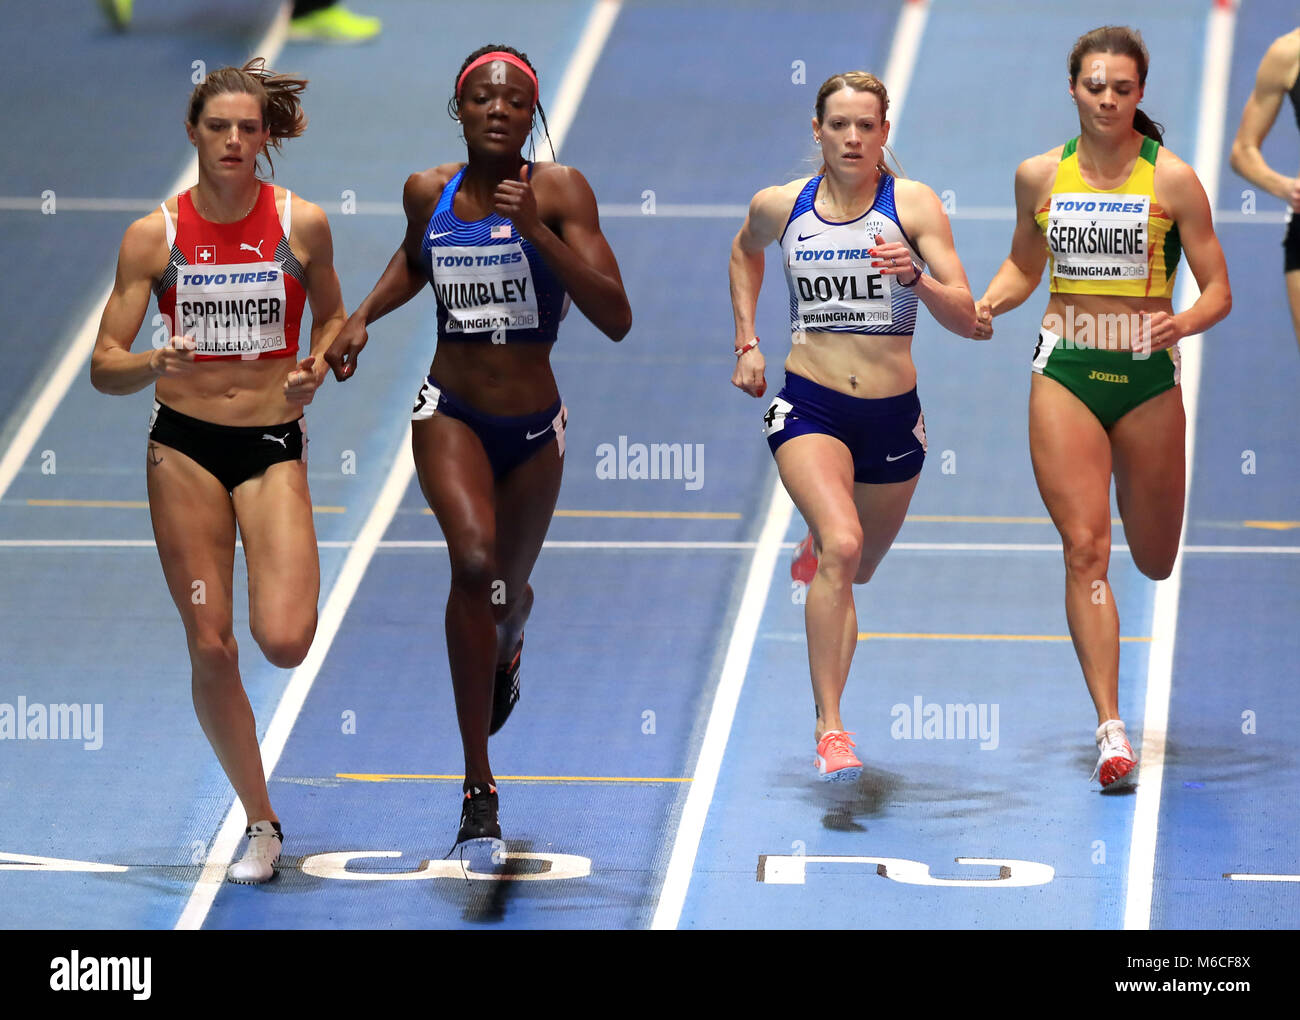 Great Britain's Eilidh Doyle (second right) on her way to finishing second in the Women's 400m Semi Final - Stock Image